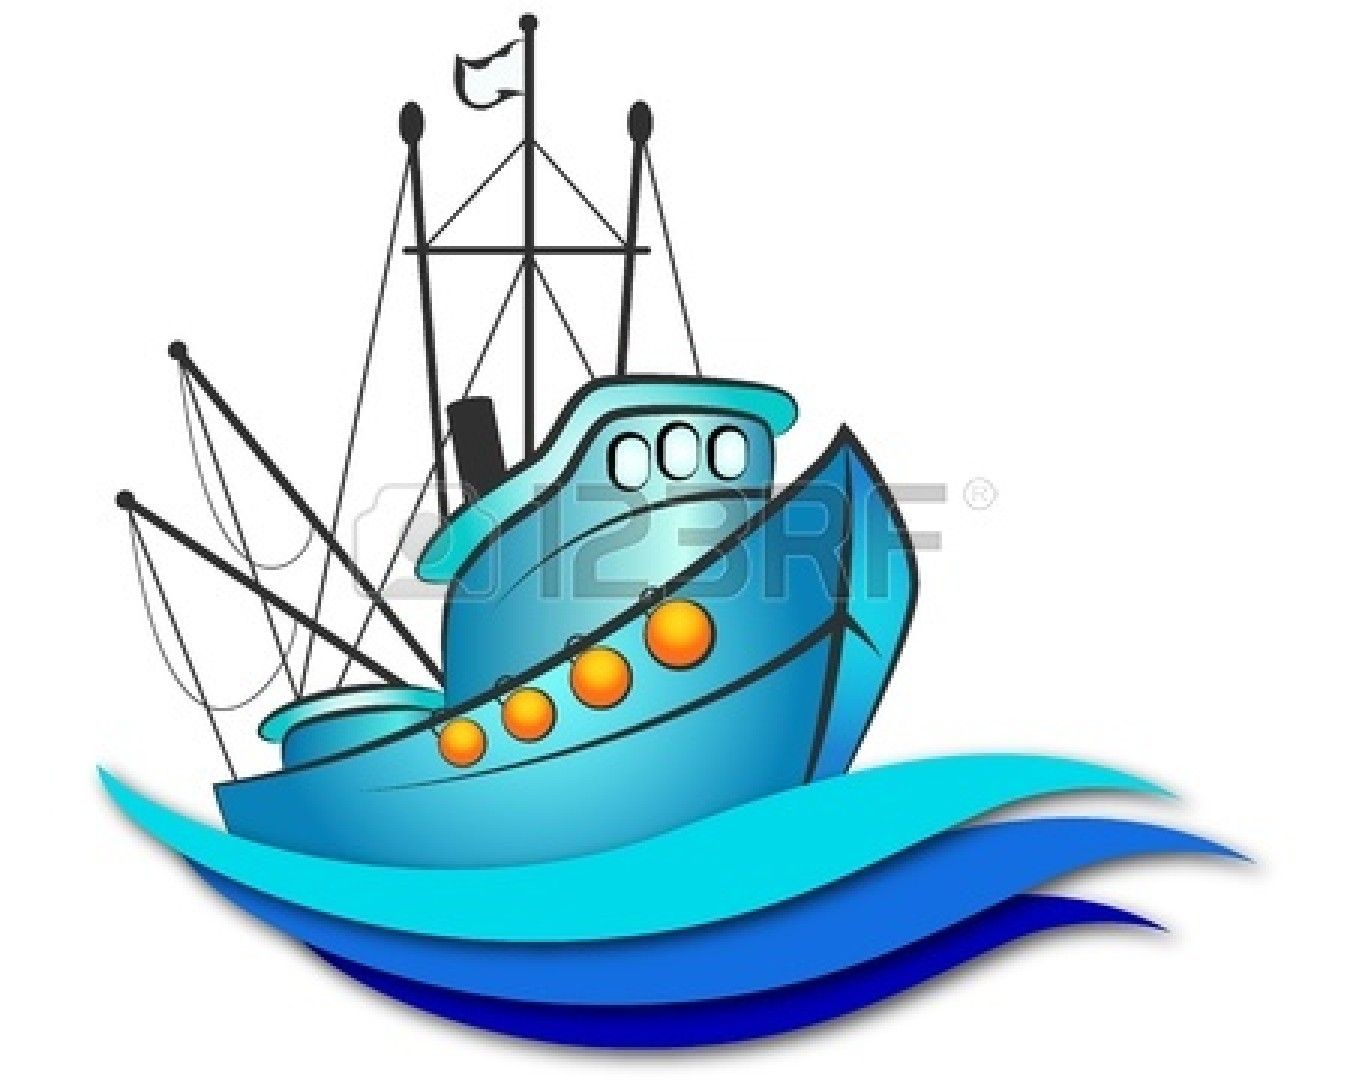 Boat clipart fishing vessel. Design for panda free